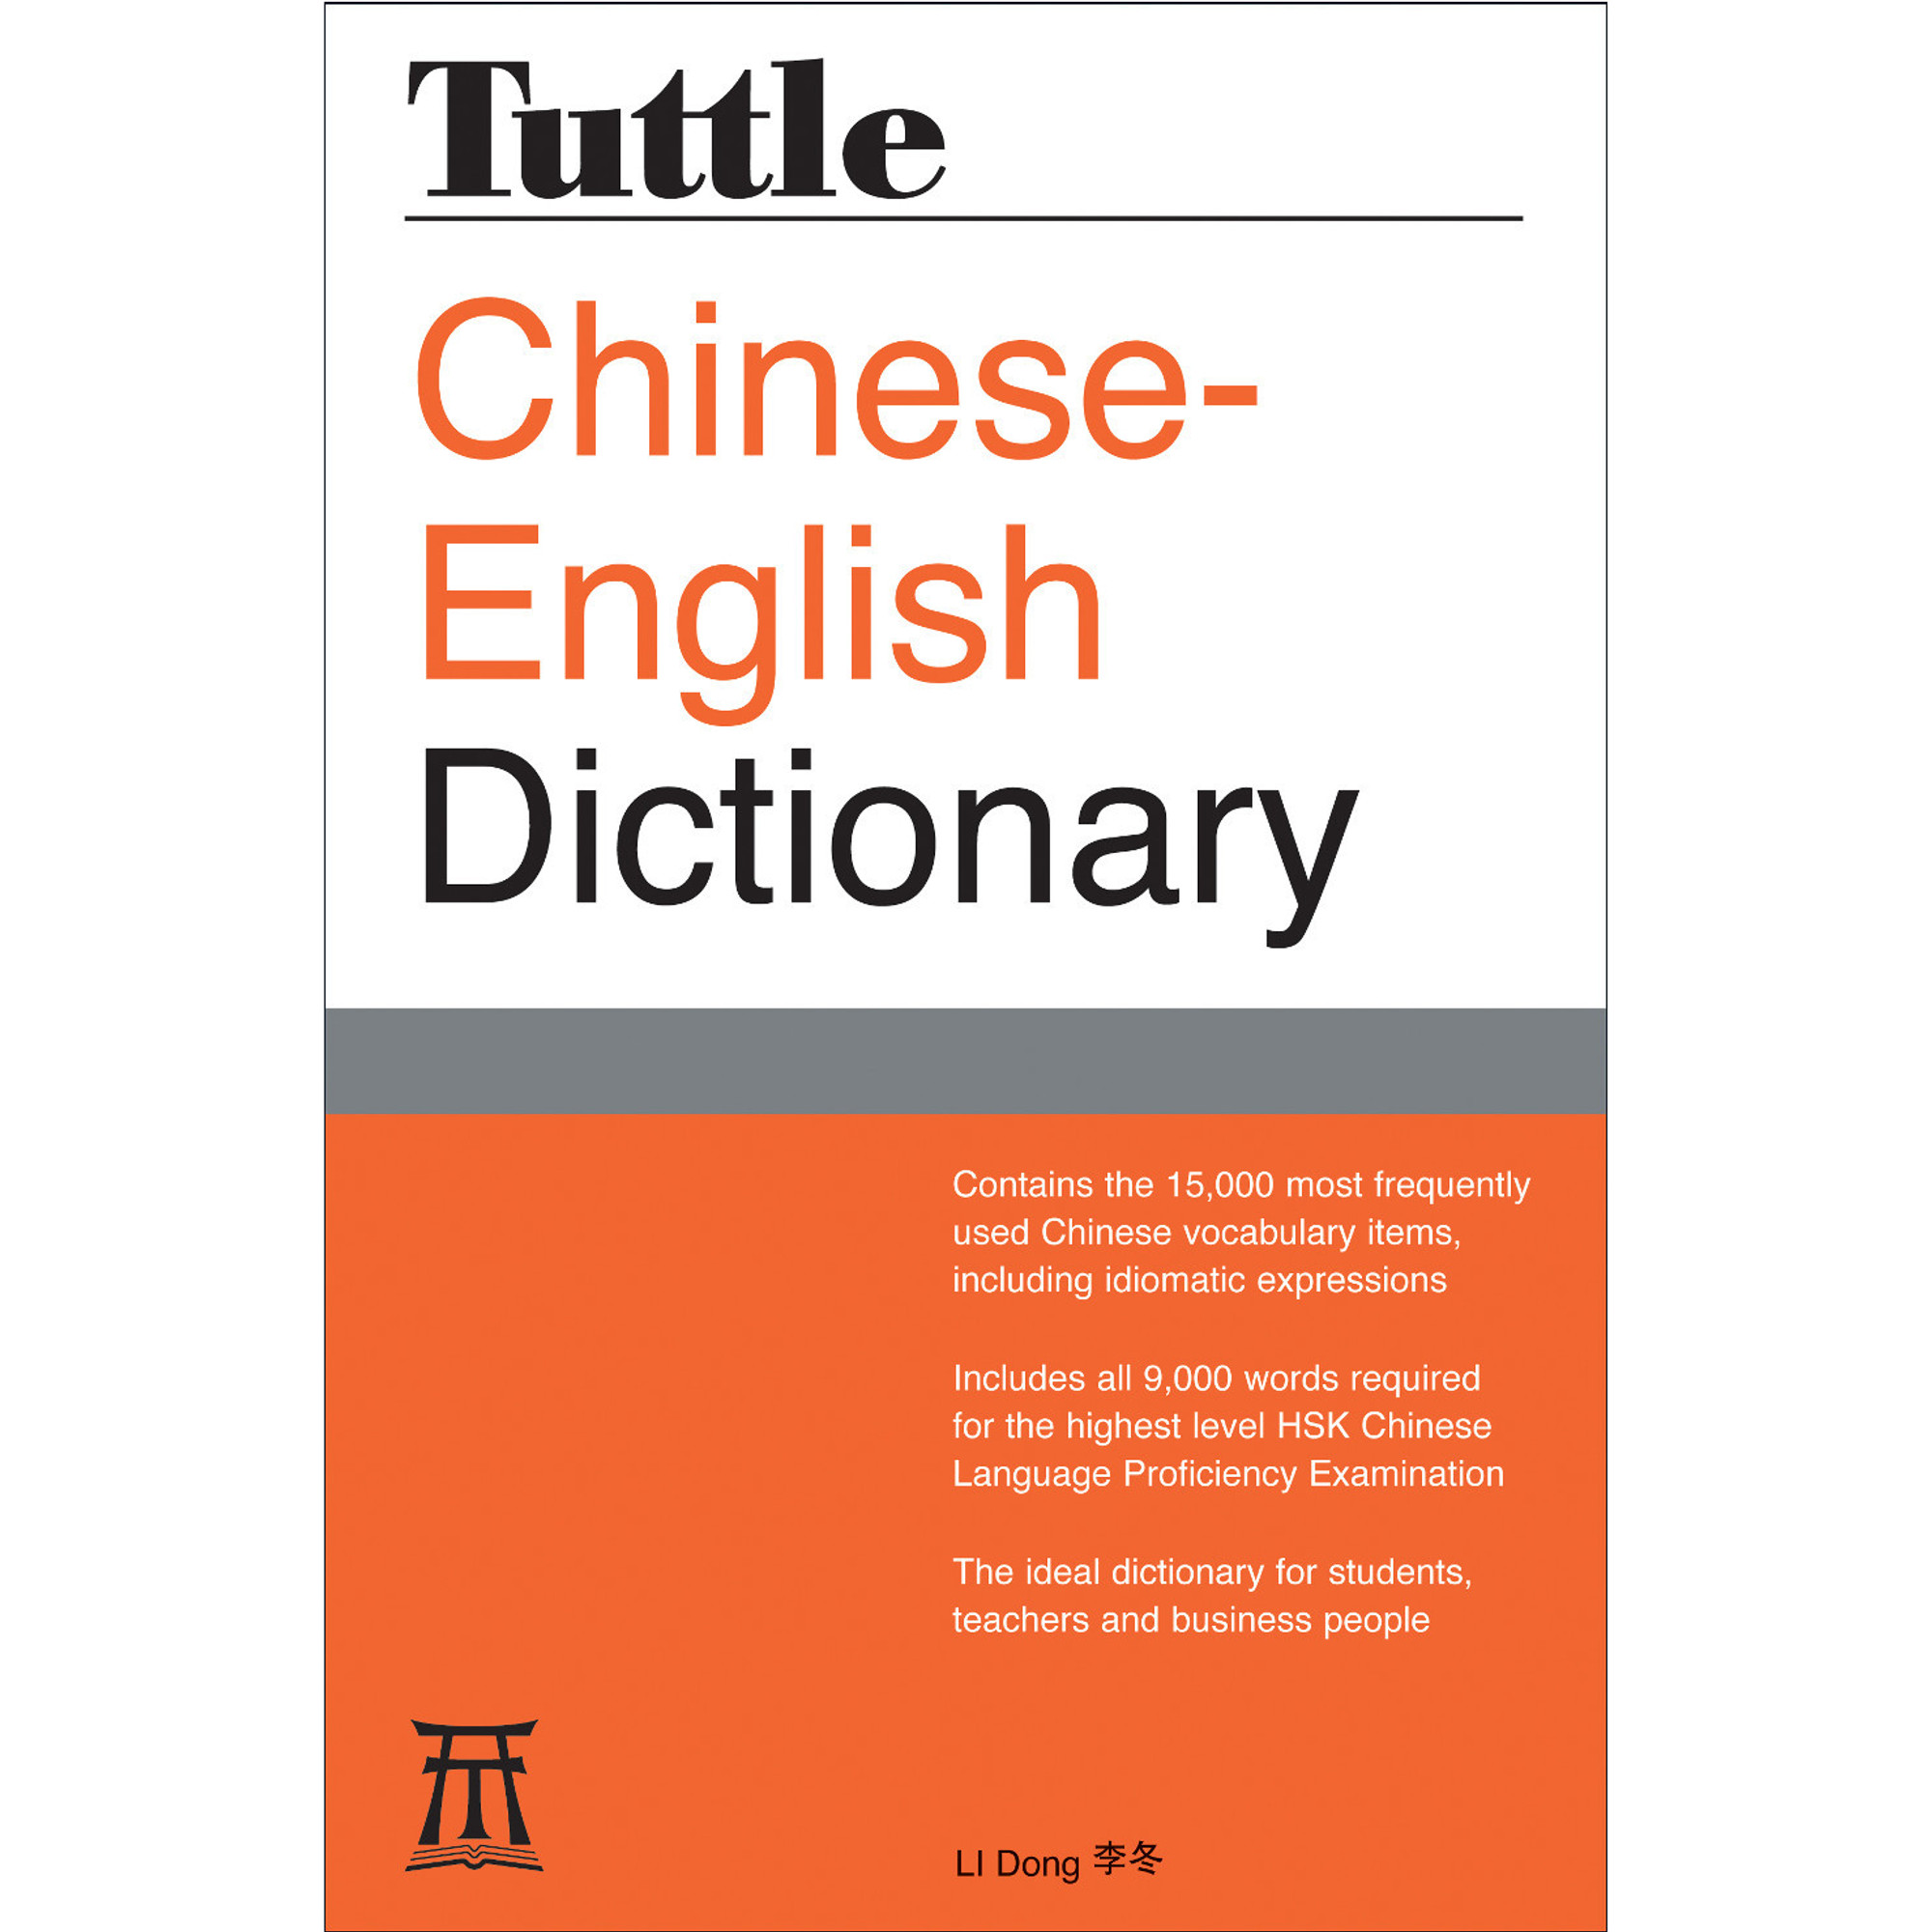 Tuttle Chinese-English Dictionary (9780804845793)